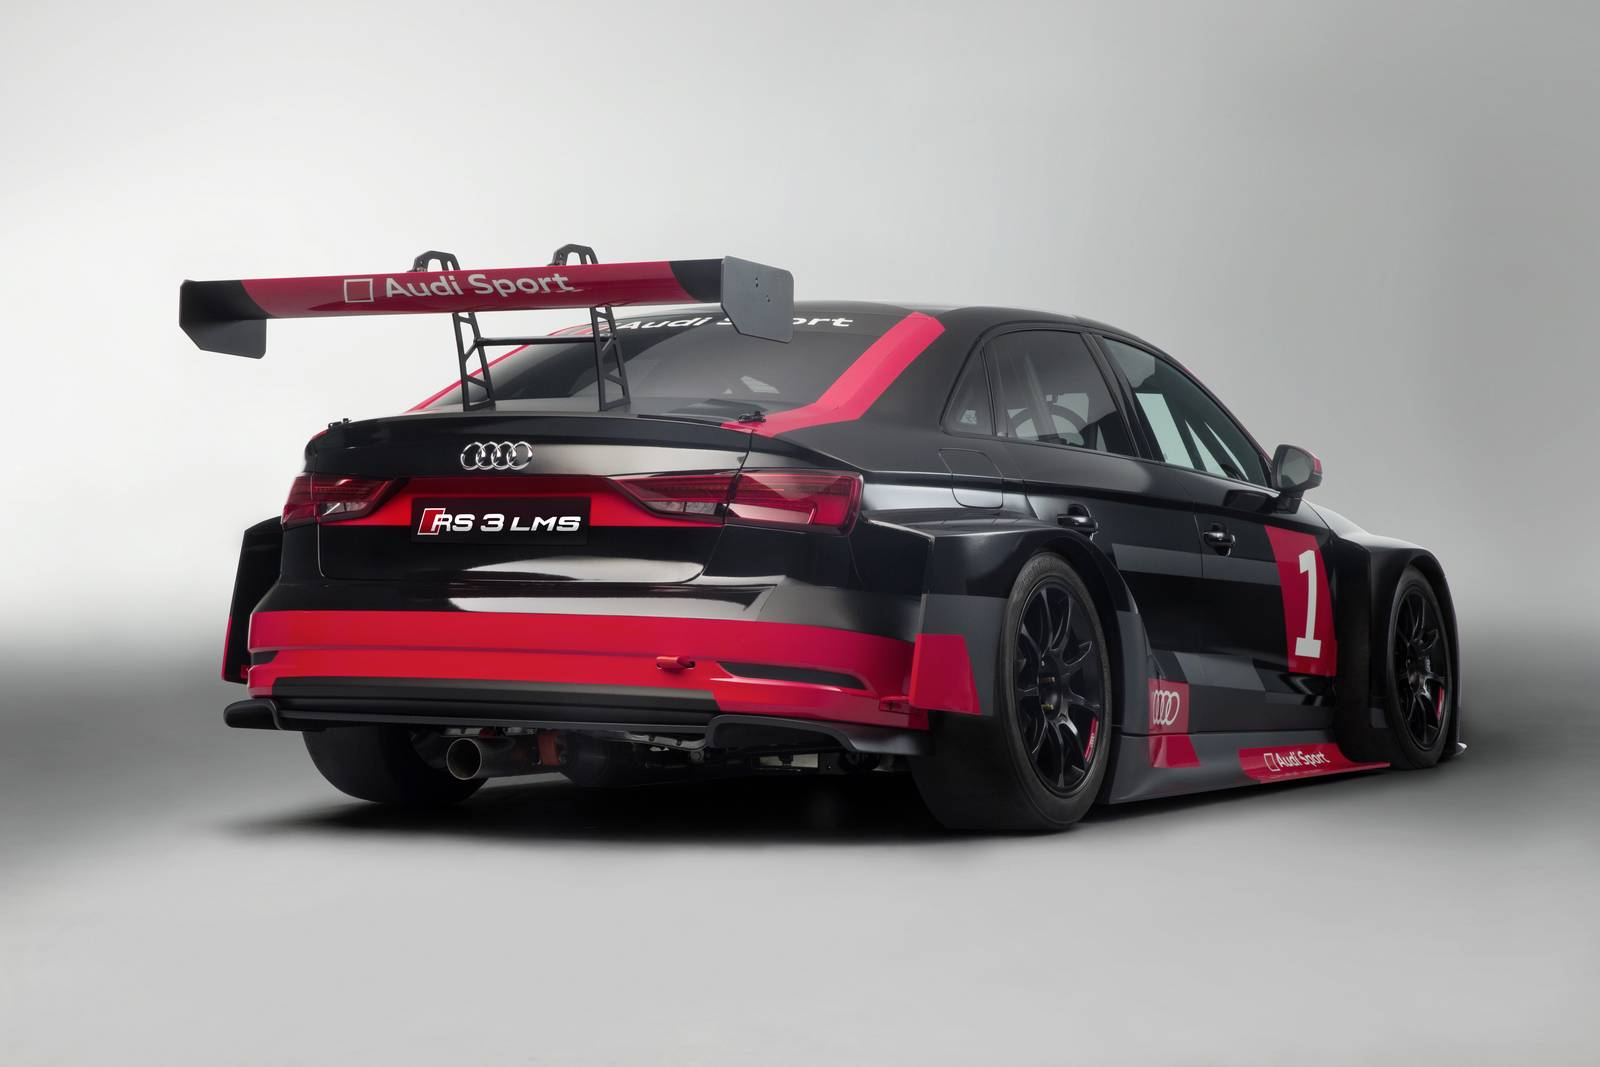 official 2017 audi rs3 lms revealed priced from 129 000. Black Bedroom Furniture Sets. Home Design Ideas